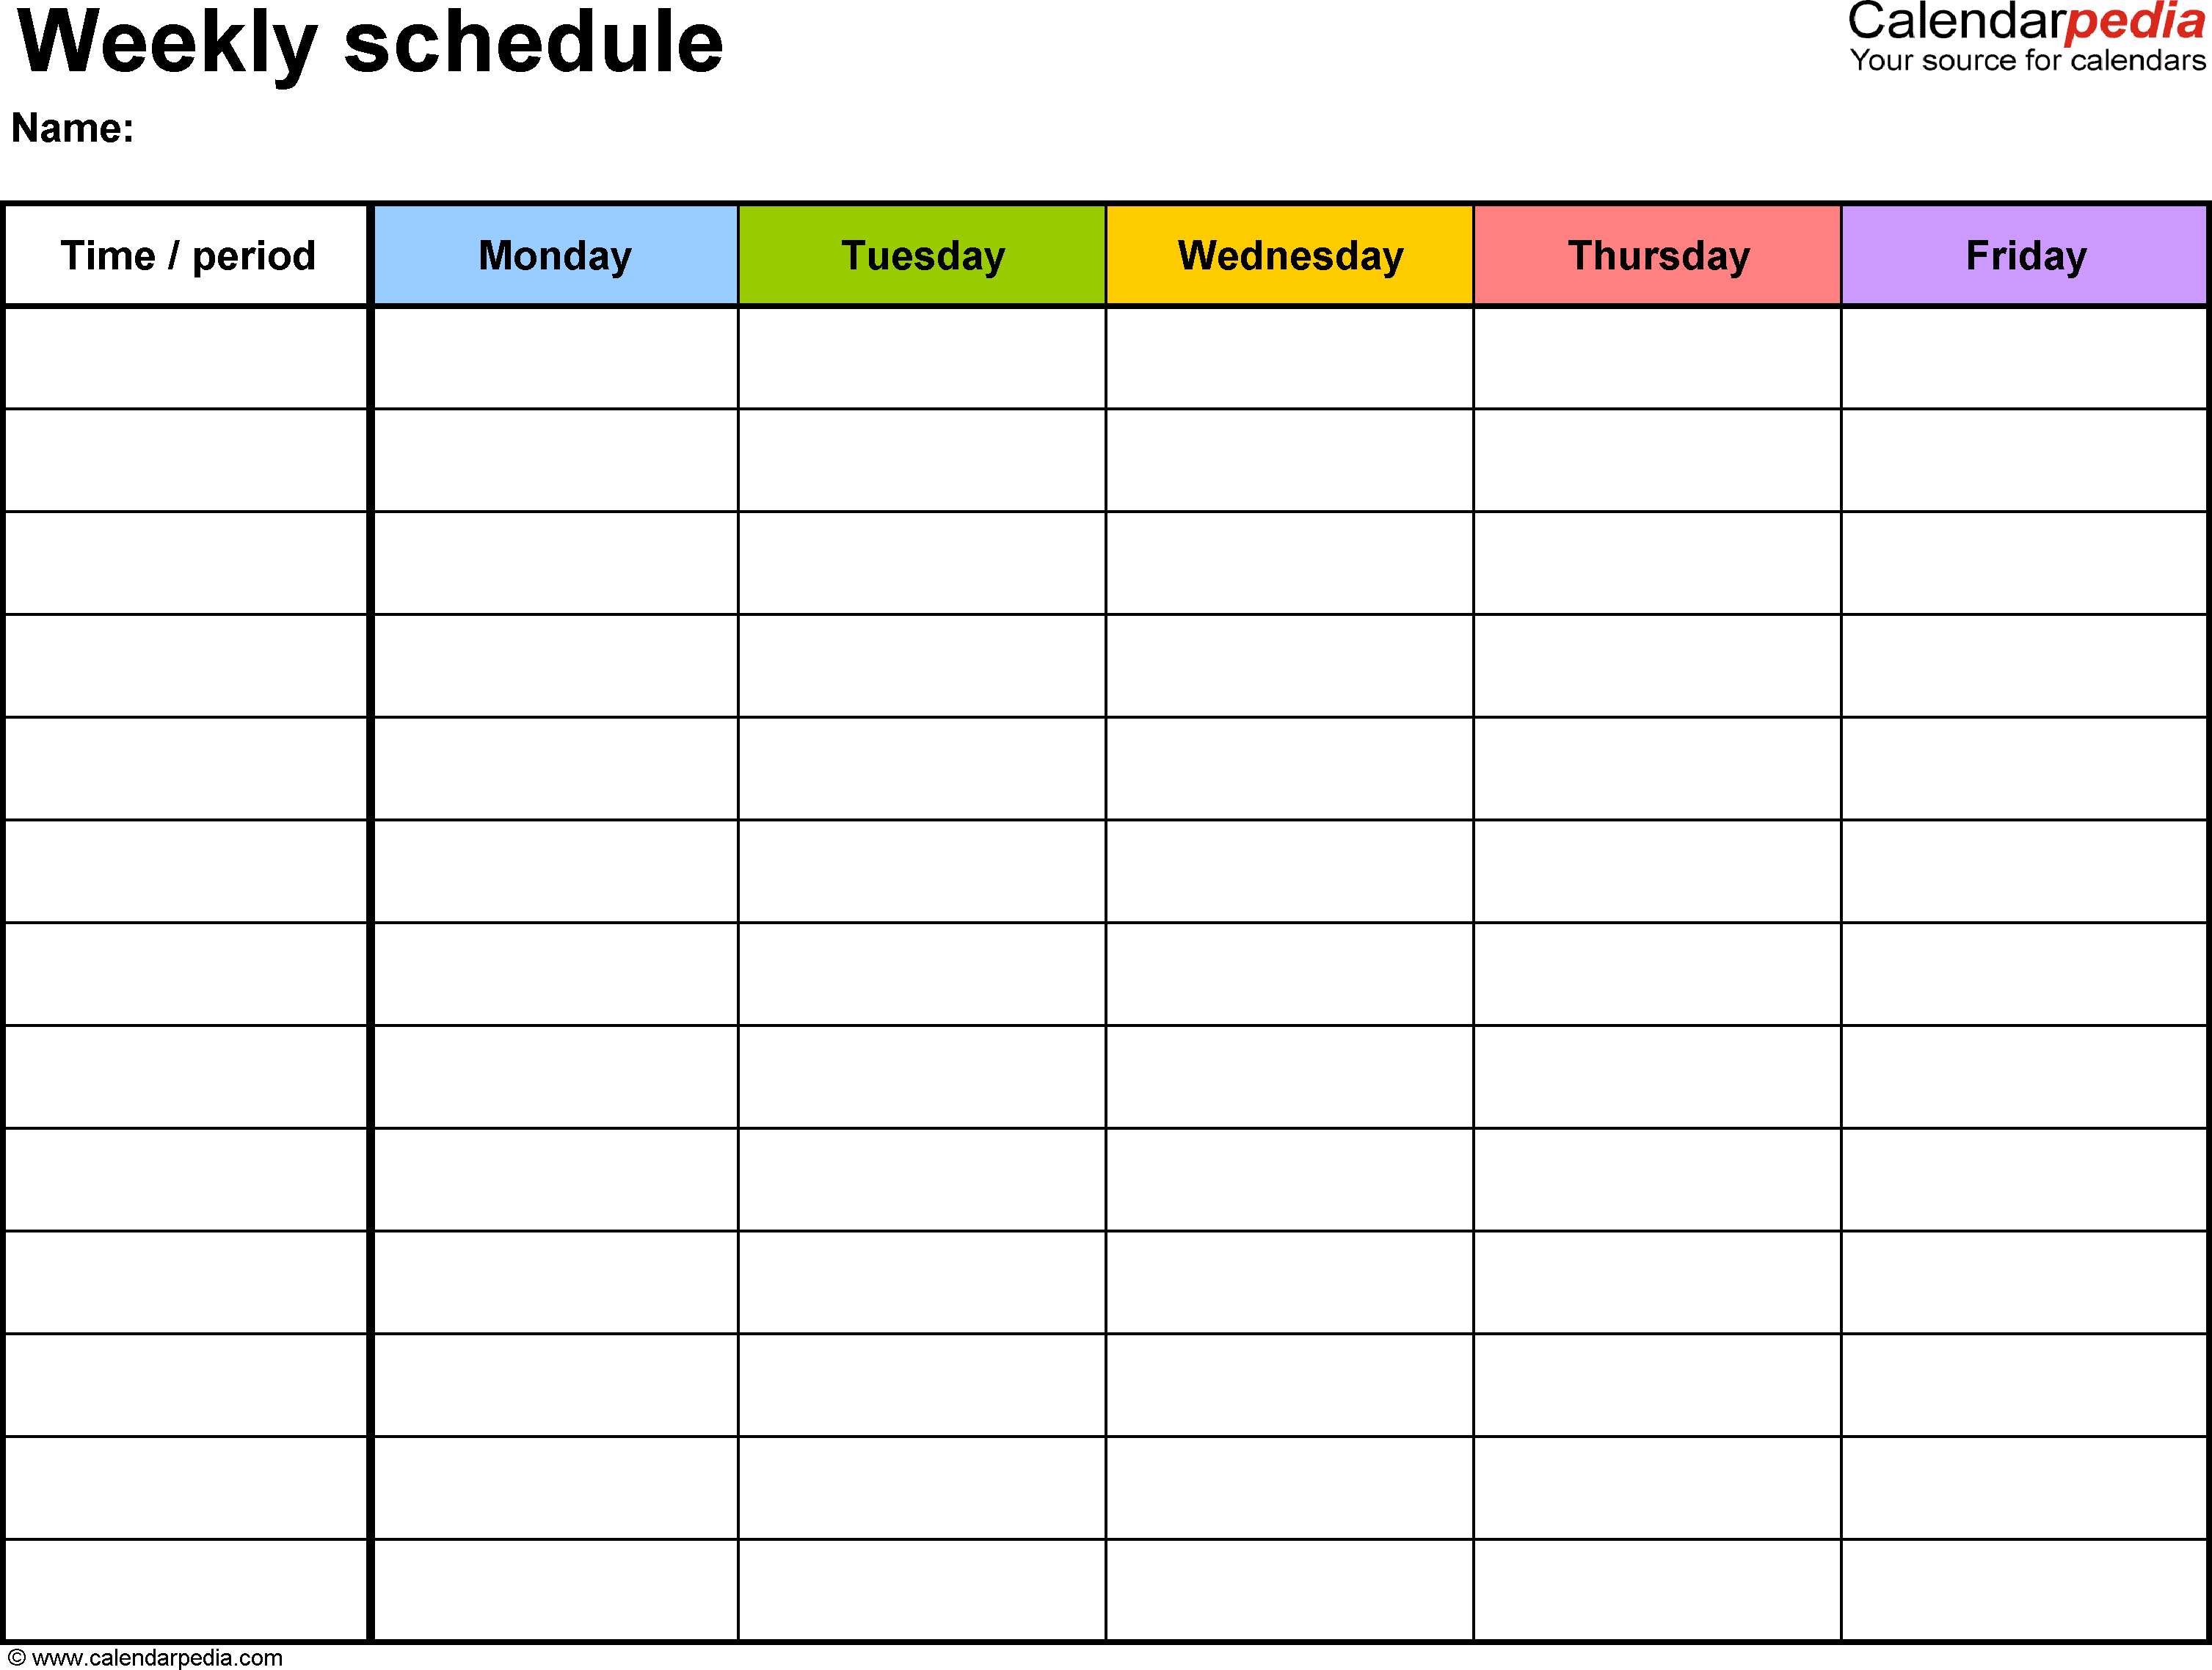 Free Weekly Schedule Templates For Word - 18 Templates intended for 7 Day Calendar Template Printable